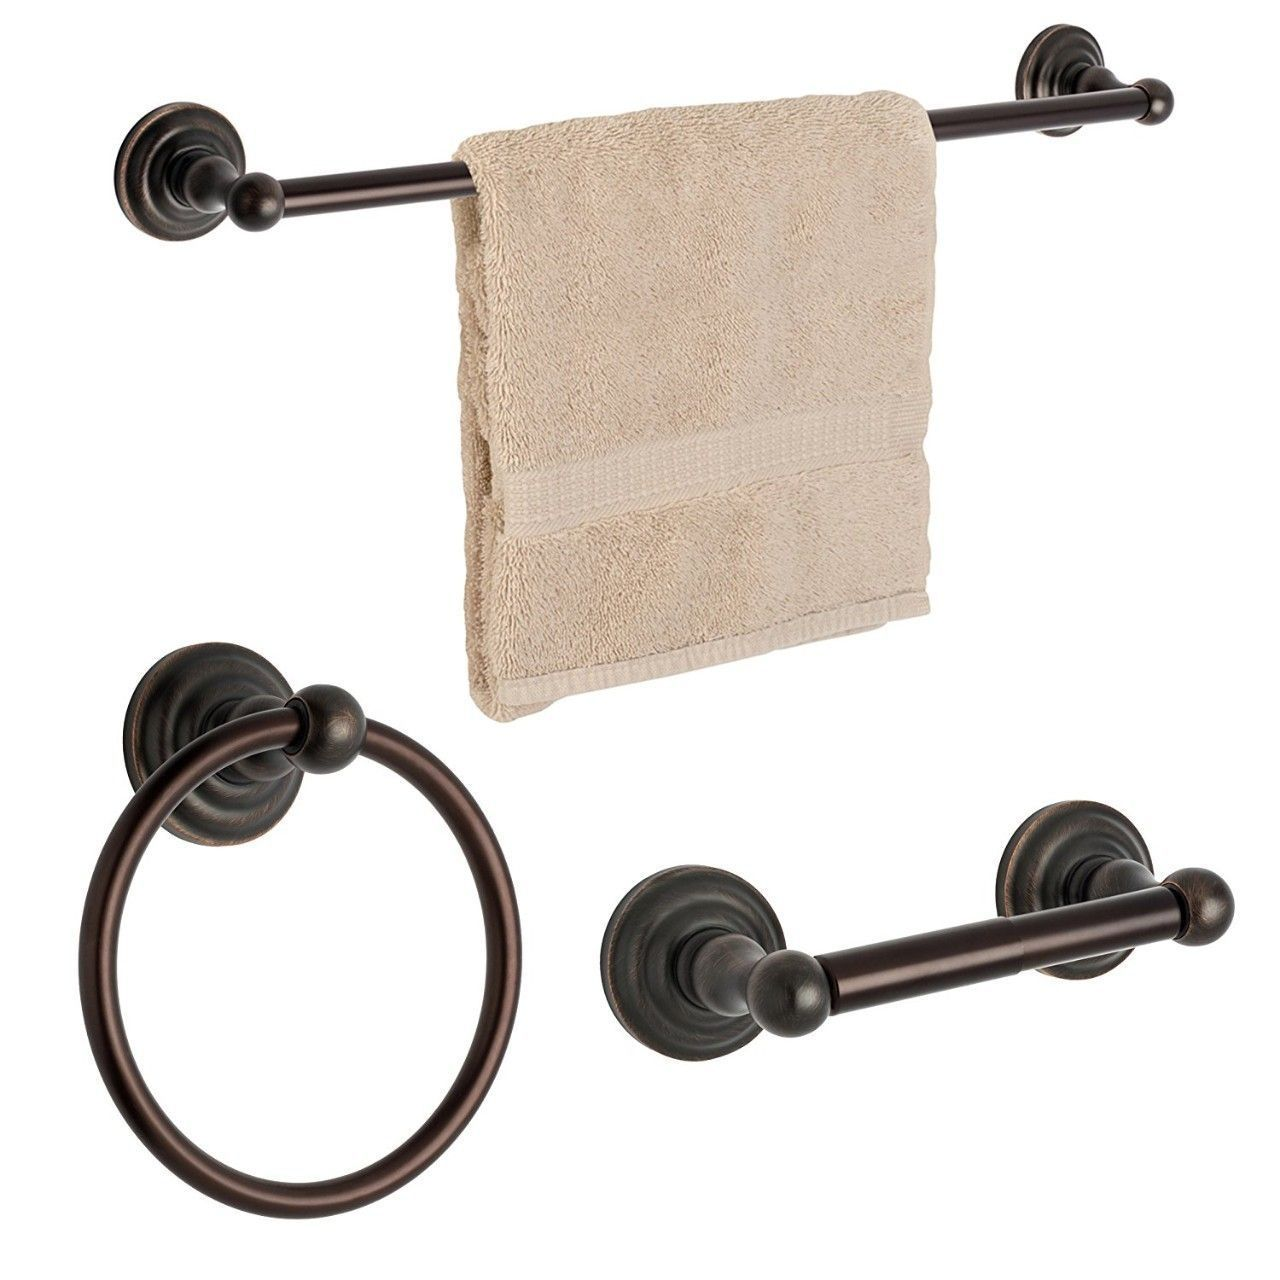 Dynasty Hardware Palisades 3800-ORB-3PC Oil Rubbed Bronze 3-Piece Bathroom Hardware Set